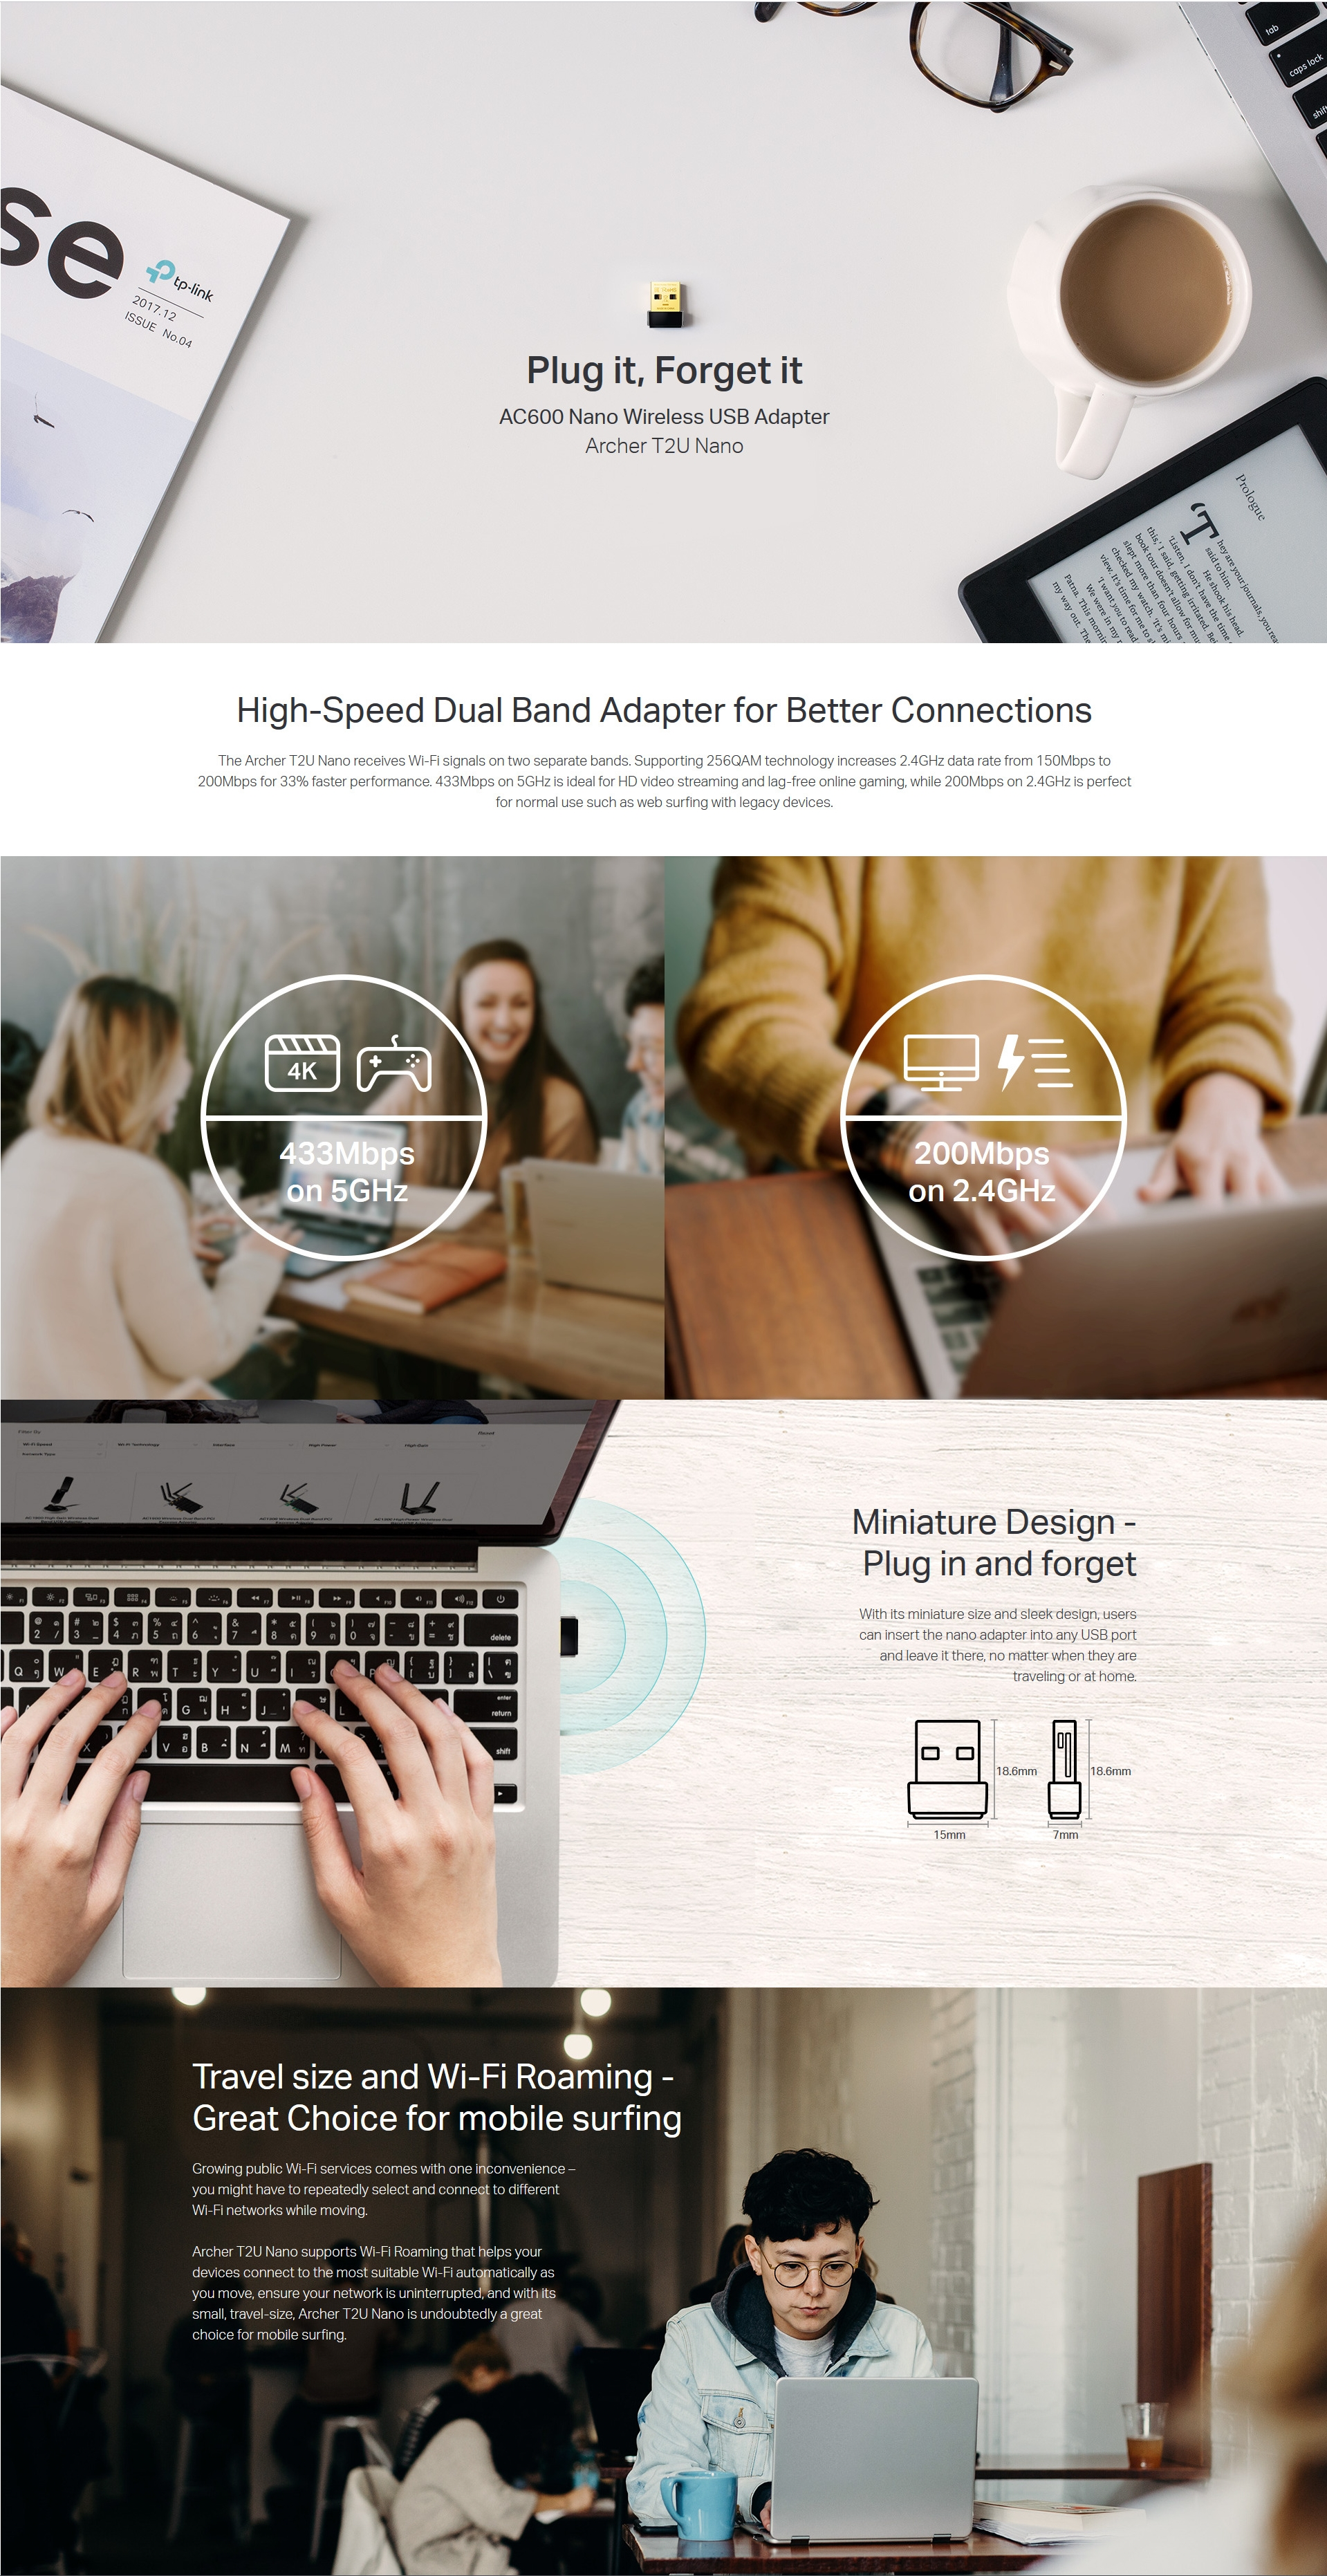 A large marketing image providing additional information about the product TP-LINK Archer T2U Nano 802.11ac AC600 Wireless Dual Band USB Adapter - Additional alt info not provided